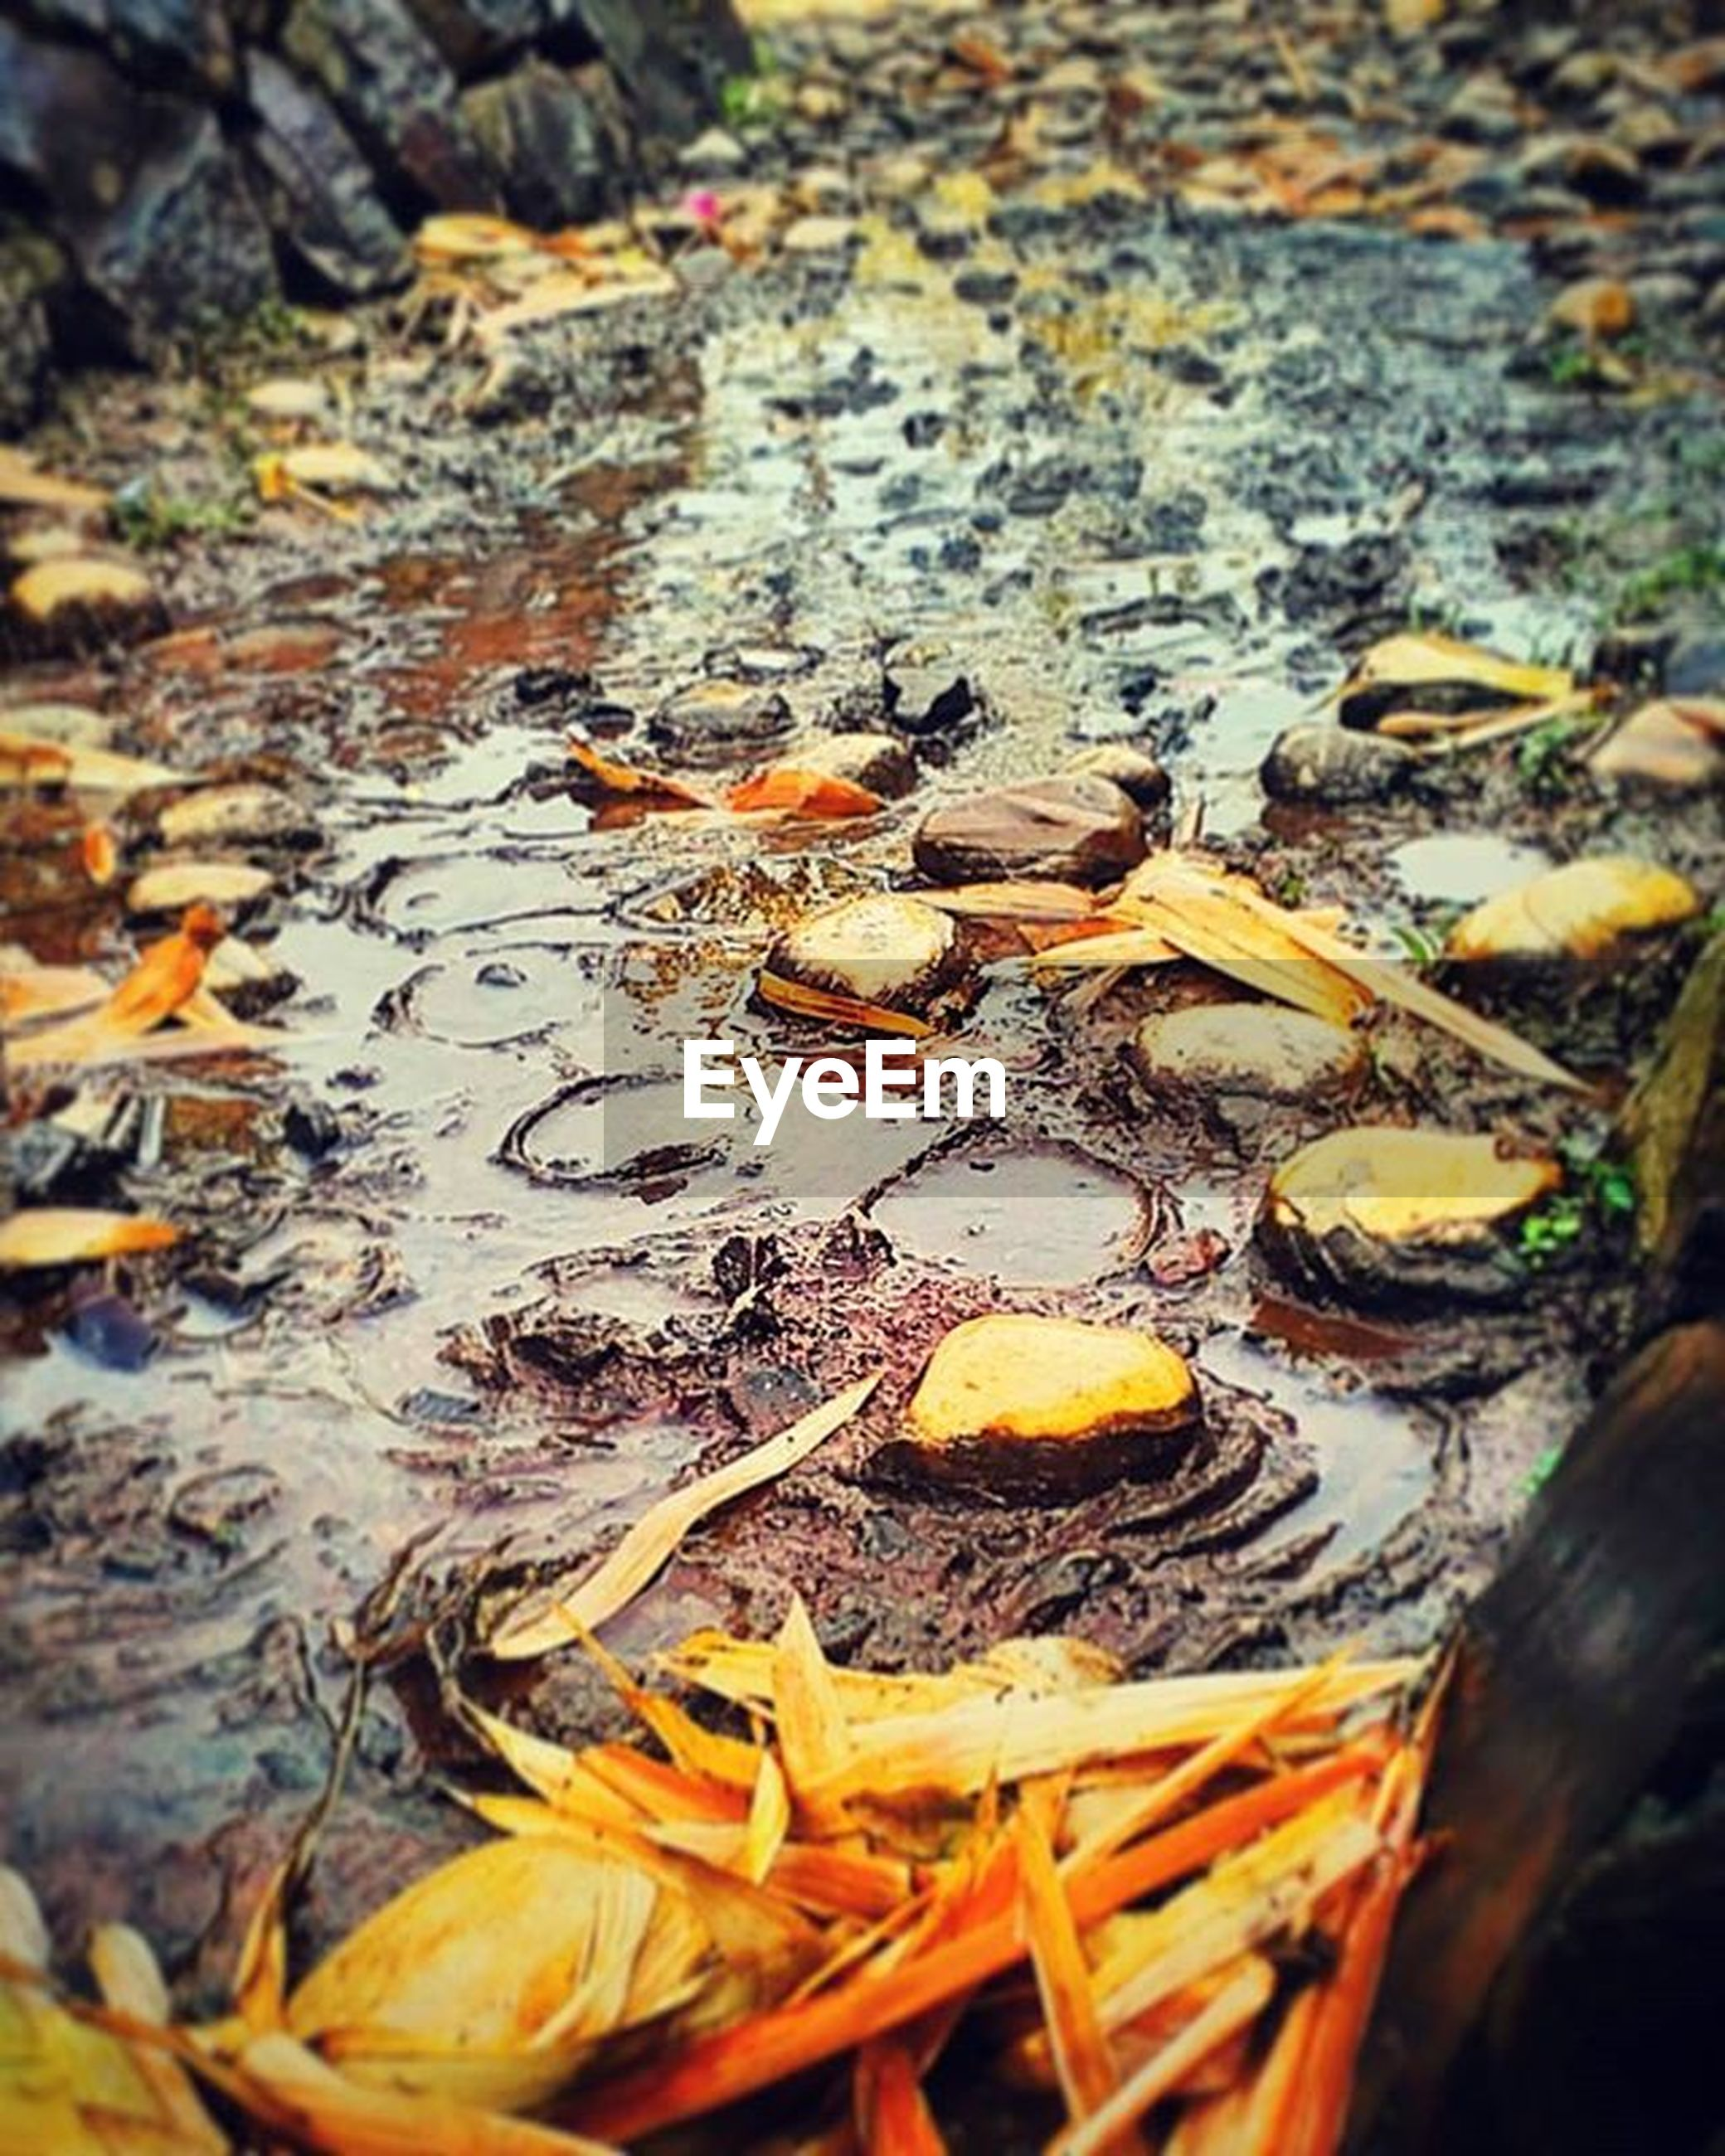 water, high angle view, leaf, autumn, reflection, leaves, pond, change, floating on water, nature, fallen, lake, waterfront, orange color, yellow, dry, outdoors, animal themes, day, no people